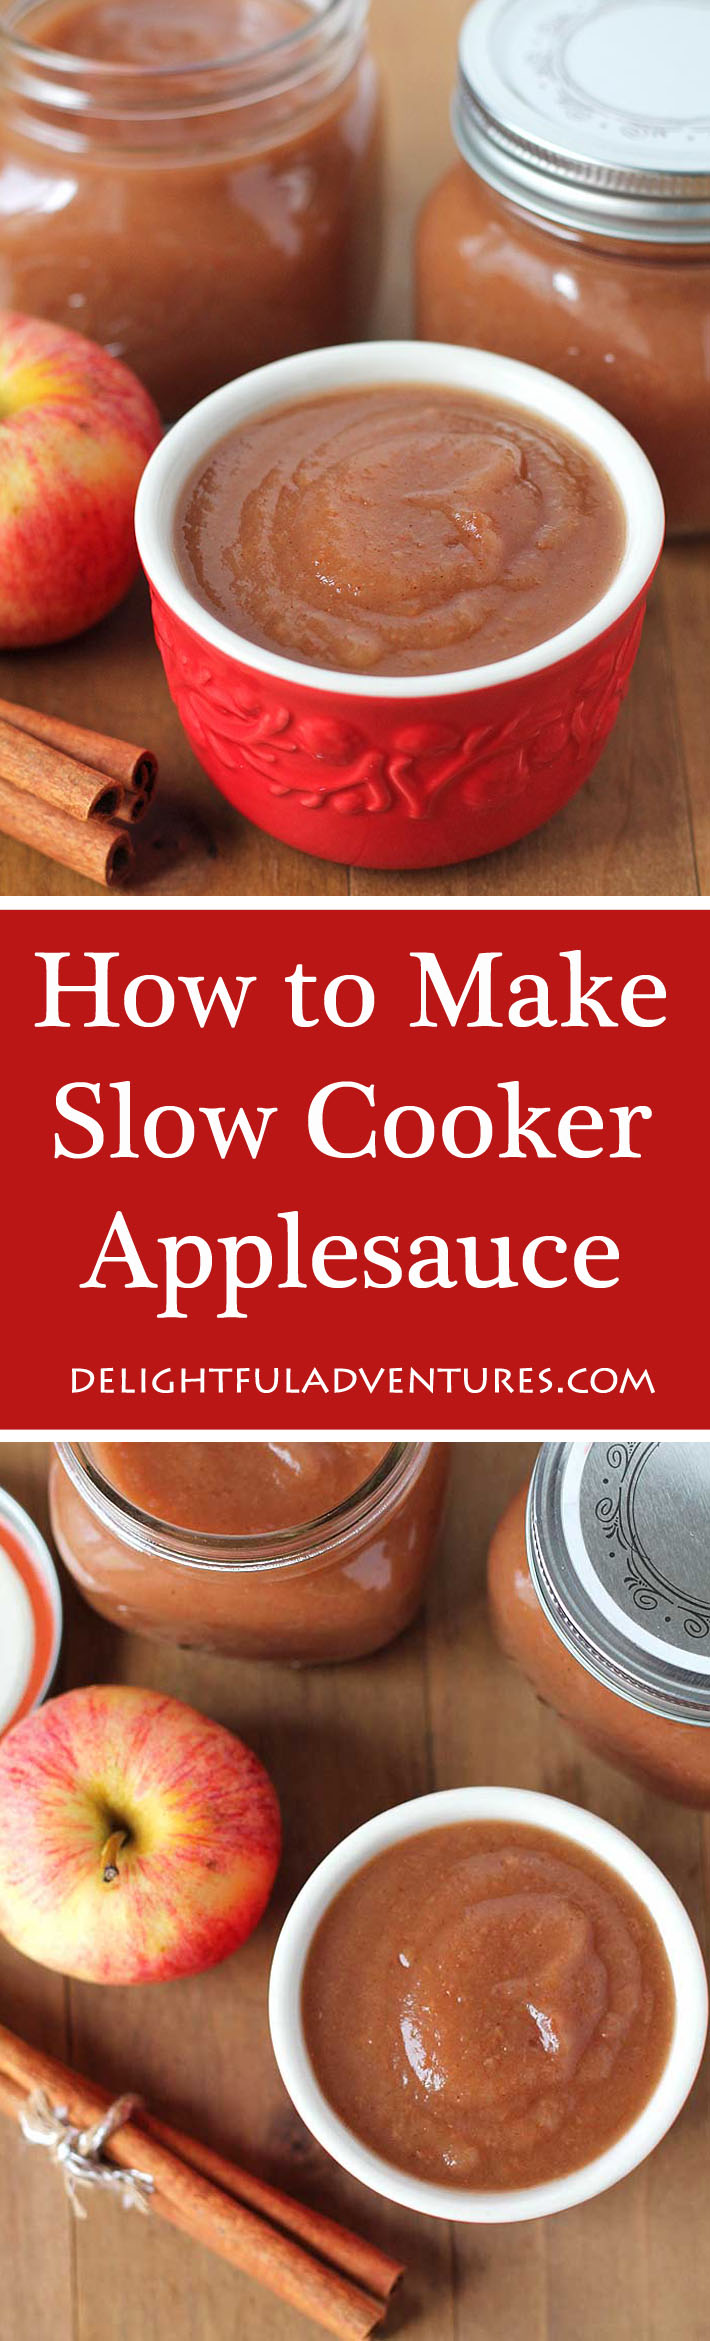 Once you get a taste of homemade slow cooker applesauce and see how easy it is to make, you won't want to buy store-bought applesauce ever again! #applesauce #slowcookerapplesauce, #homemadeapplesauce